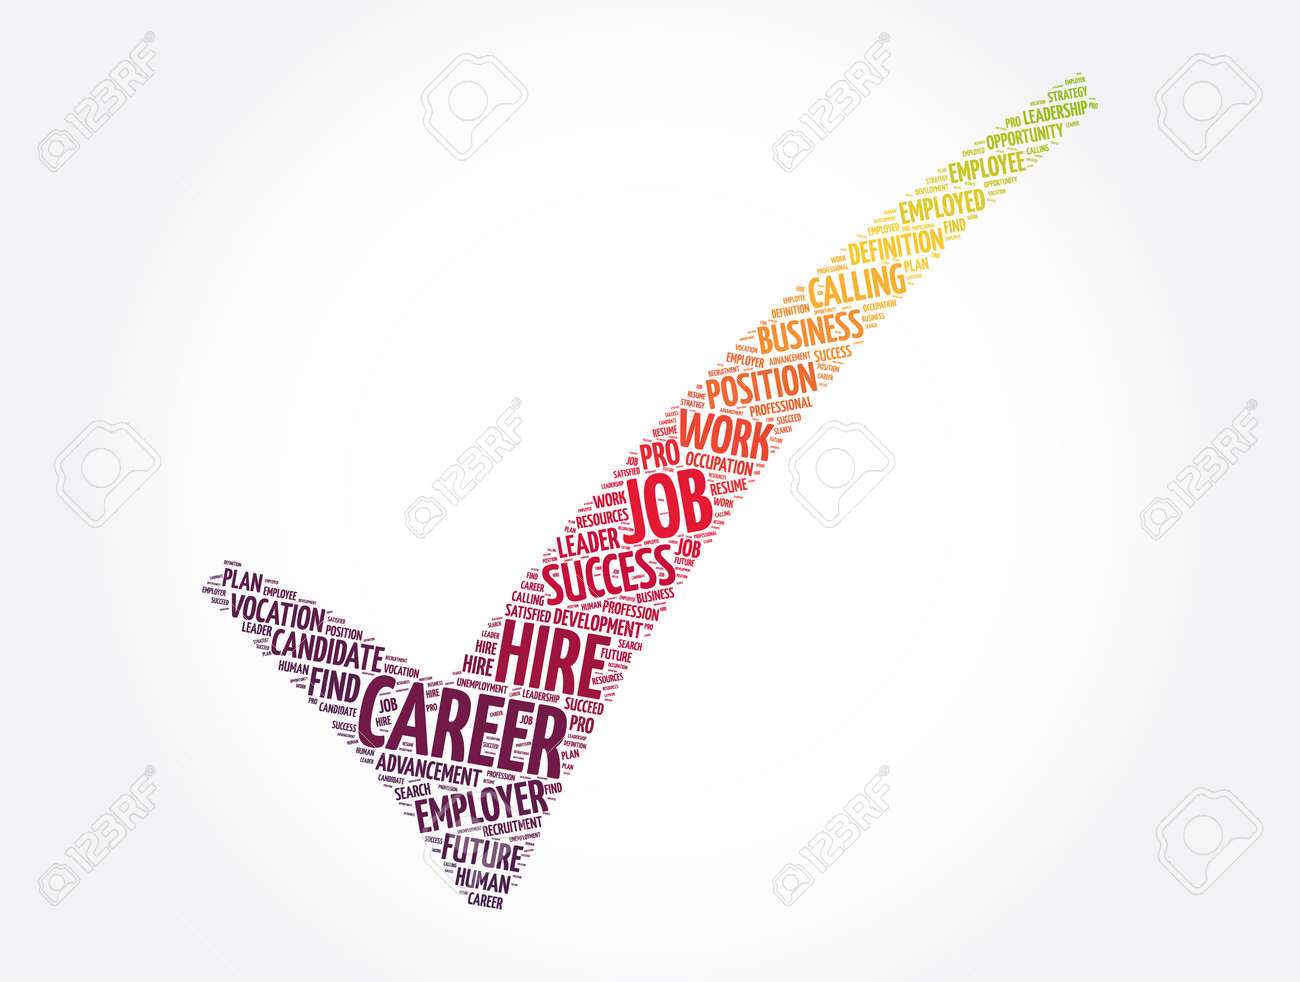 Career check mark word cloud collage, business concept background - 166624442